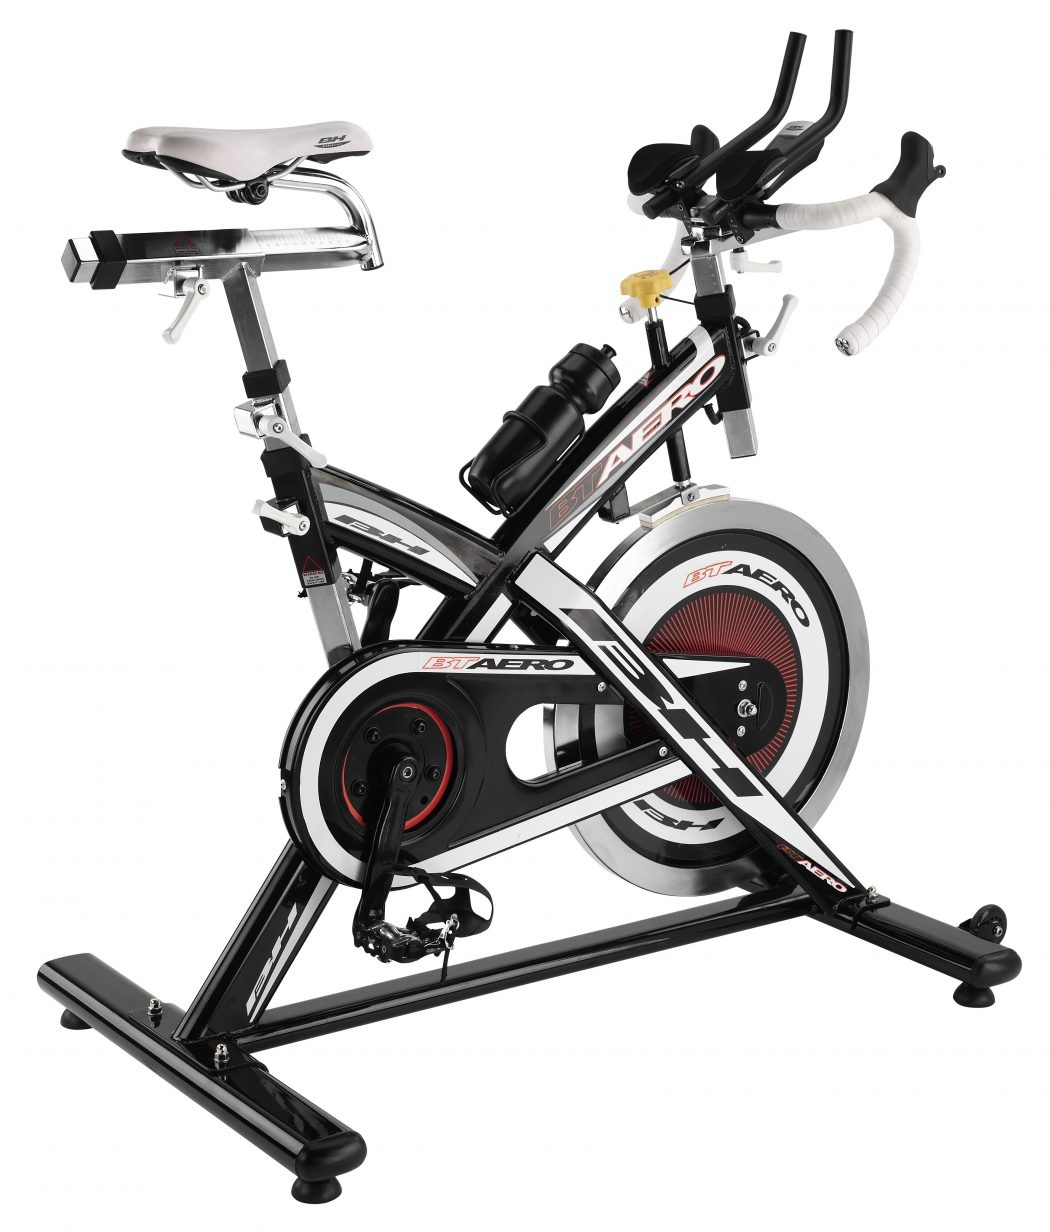 https://www.indoorcycling.org/magazin/wp-content/uploads/2018/03/h9175t-bt-aero-bicycling-training-1050x1232.jpg